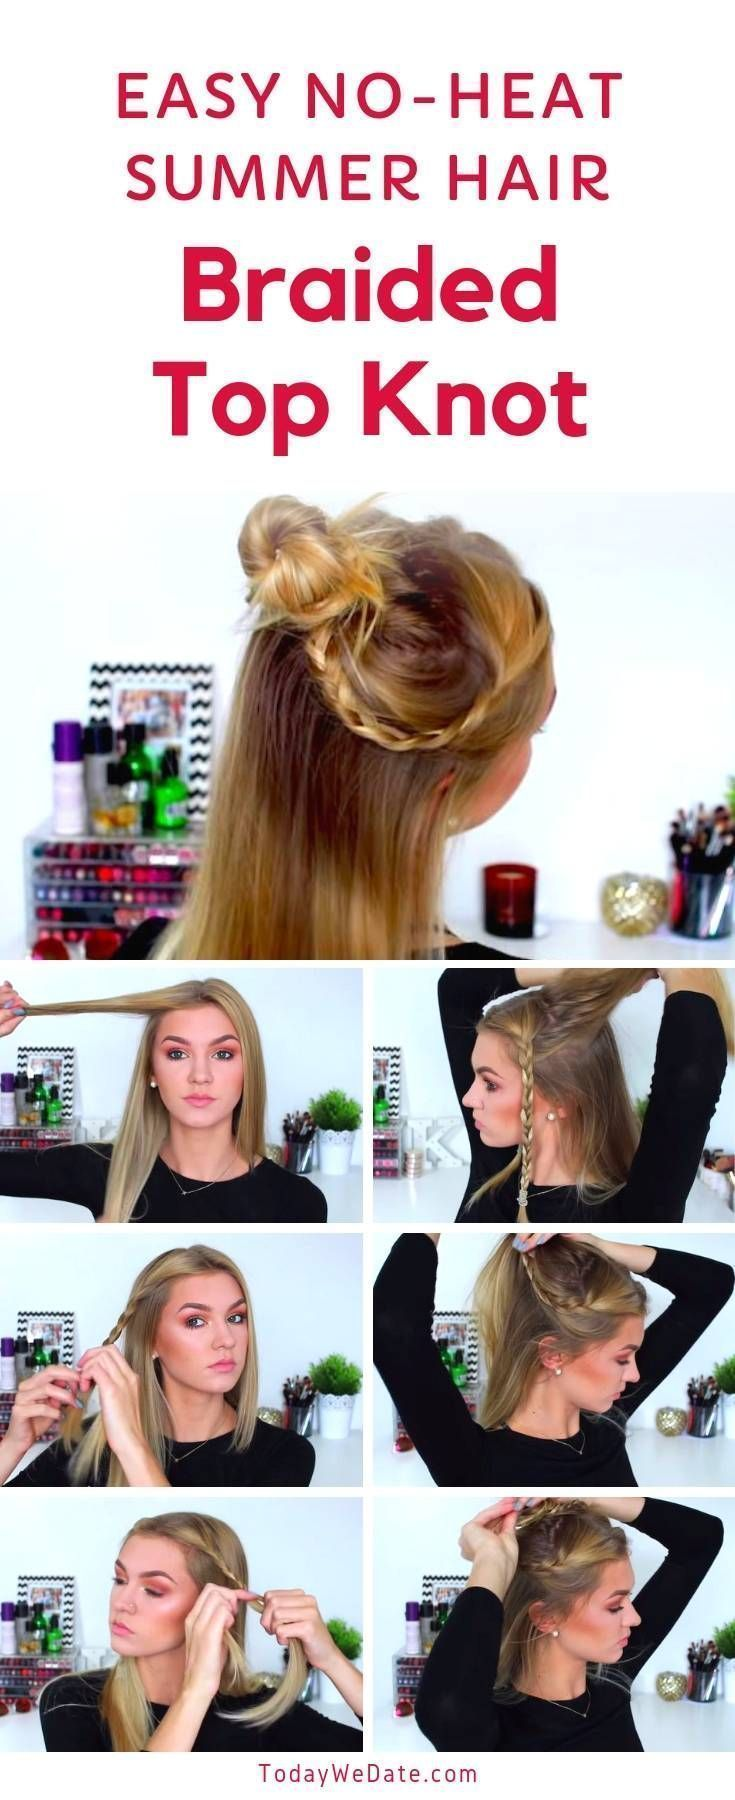 Hair Styles For School 7 Noheat Easy Summer Hairstyles Anyone Can Pull Off In 5 Hair Styles For School 7 Noheat Easy Summer Hairstyles Anyone Can Pull Off In 5 Hair Style...